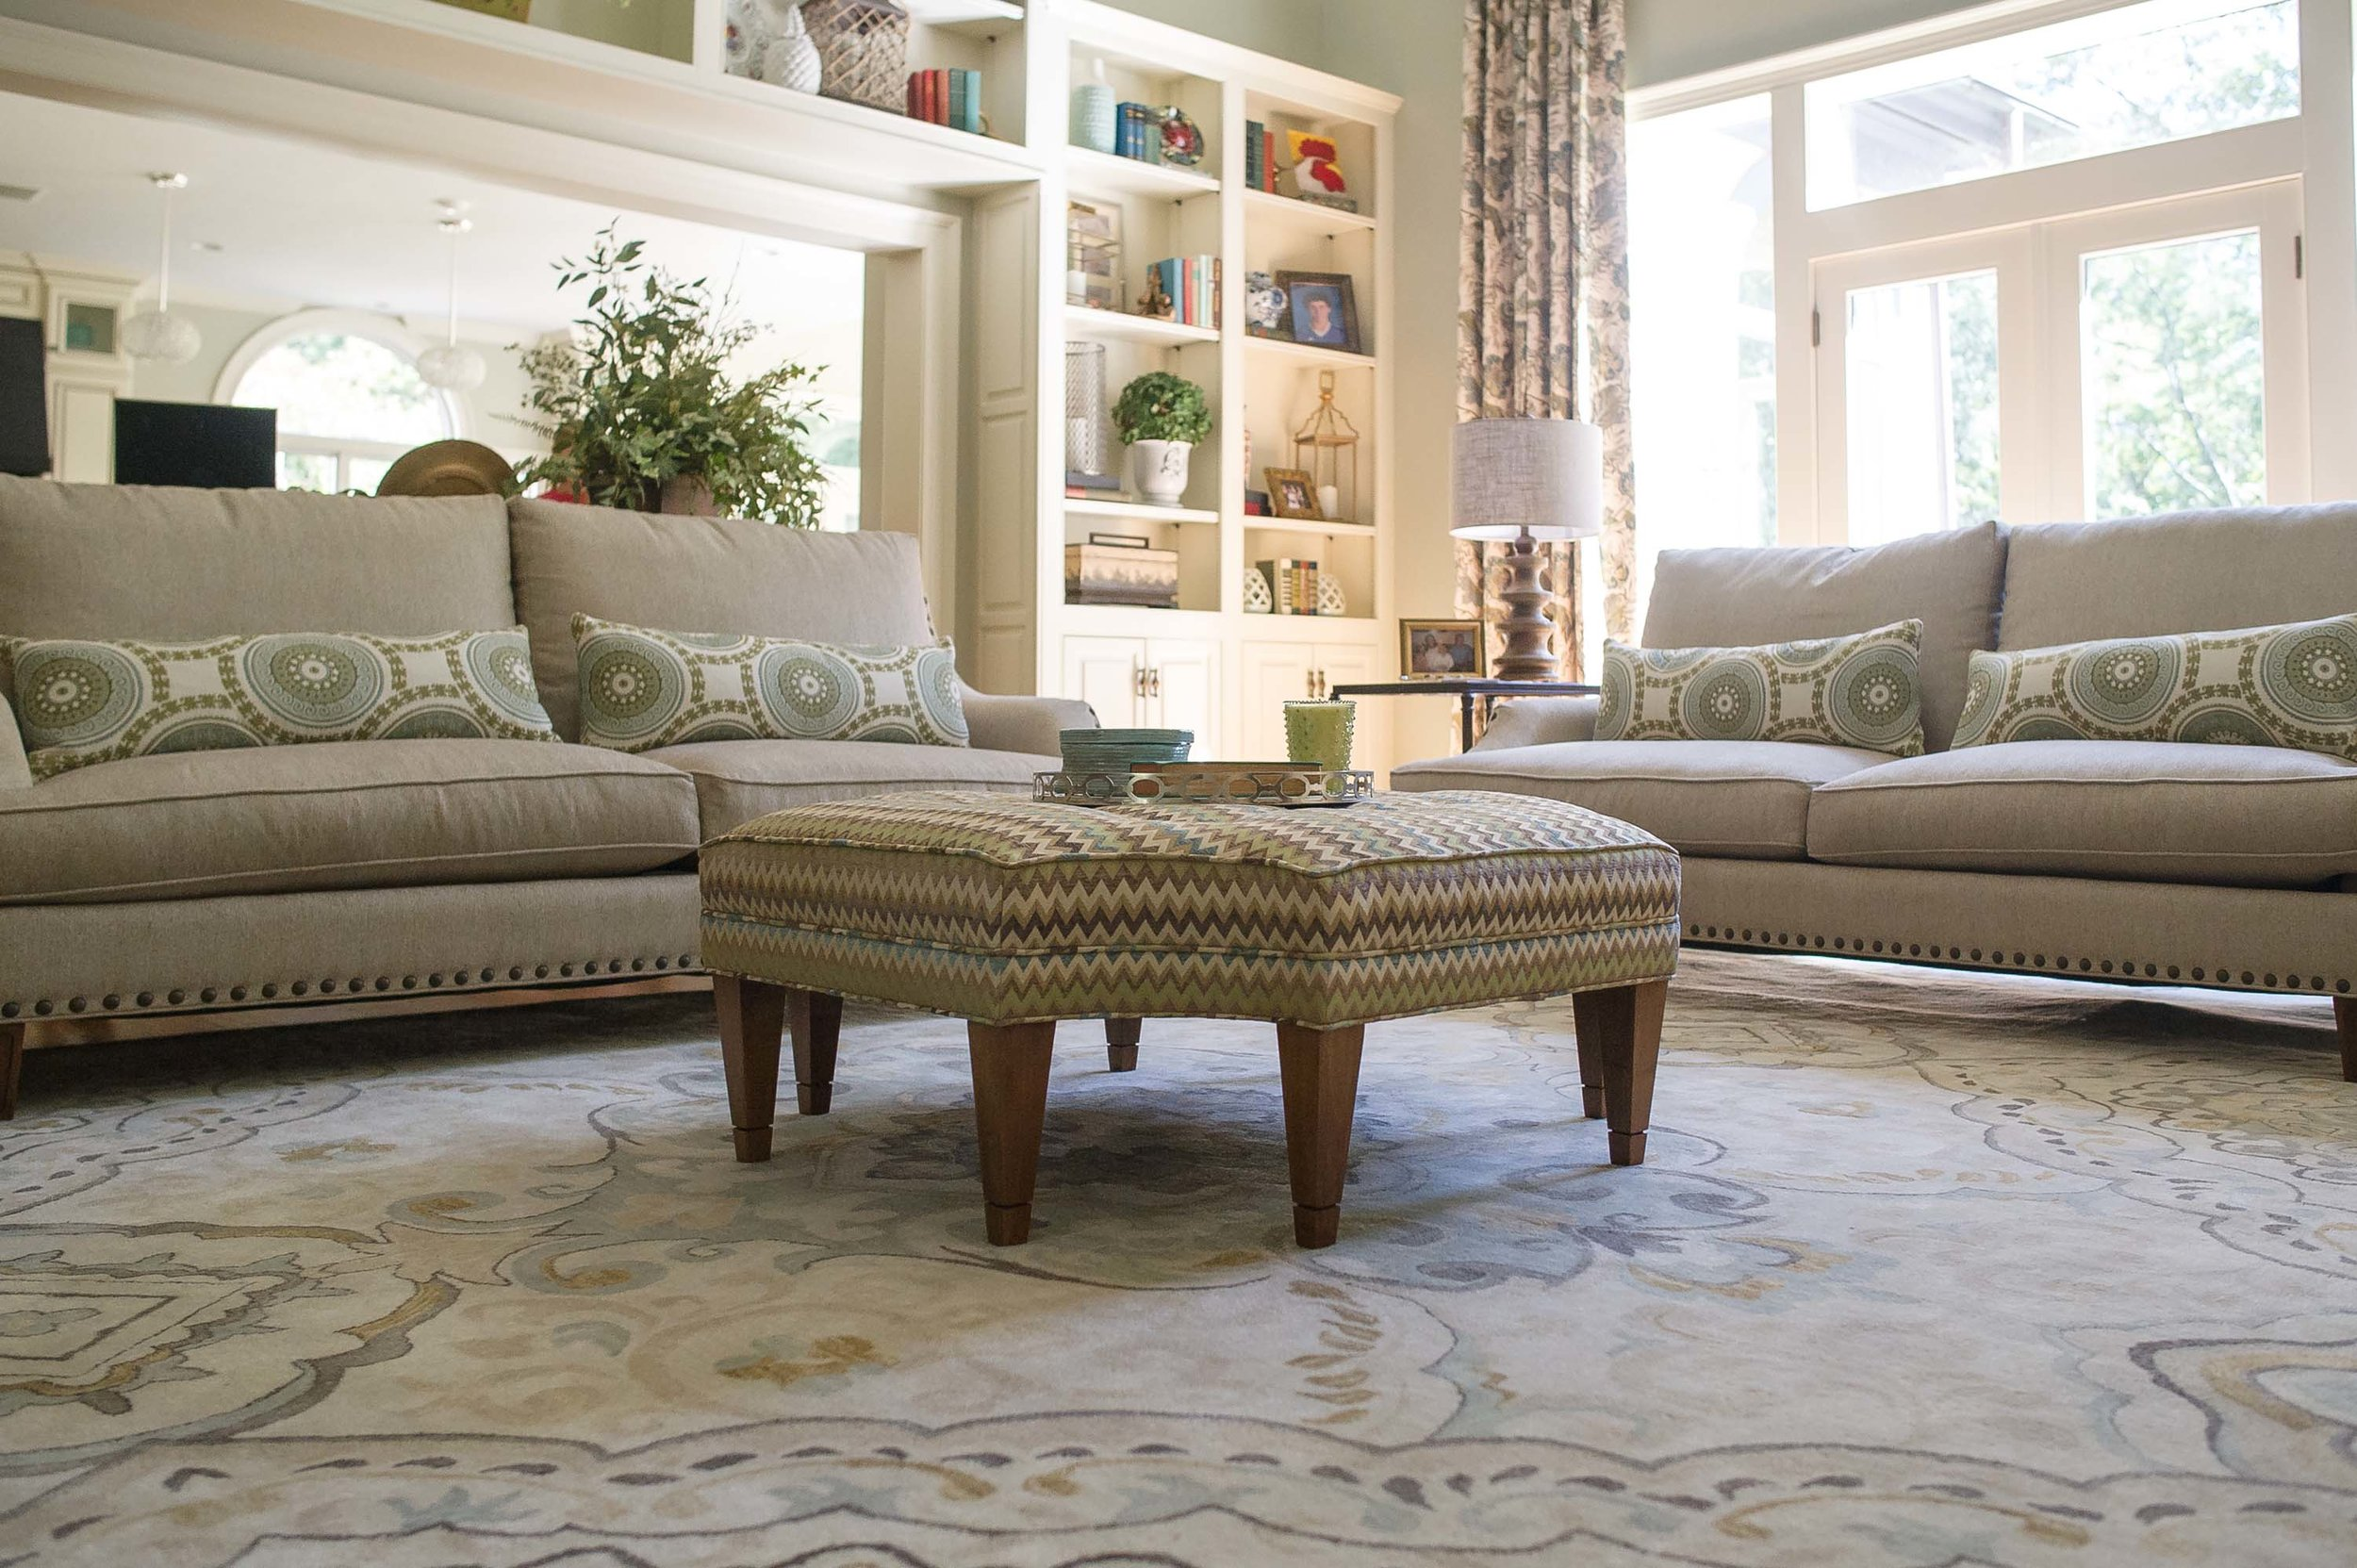 Living room with large carpet, ottoman, and sofa